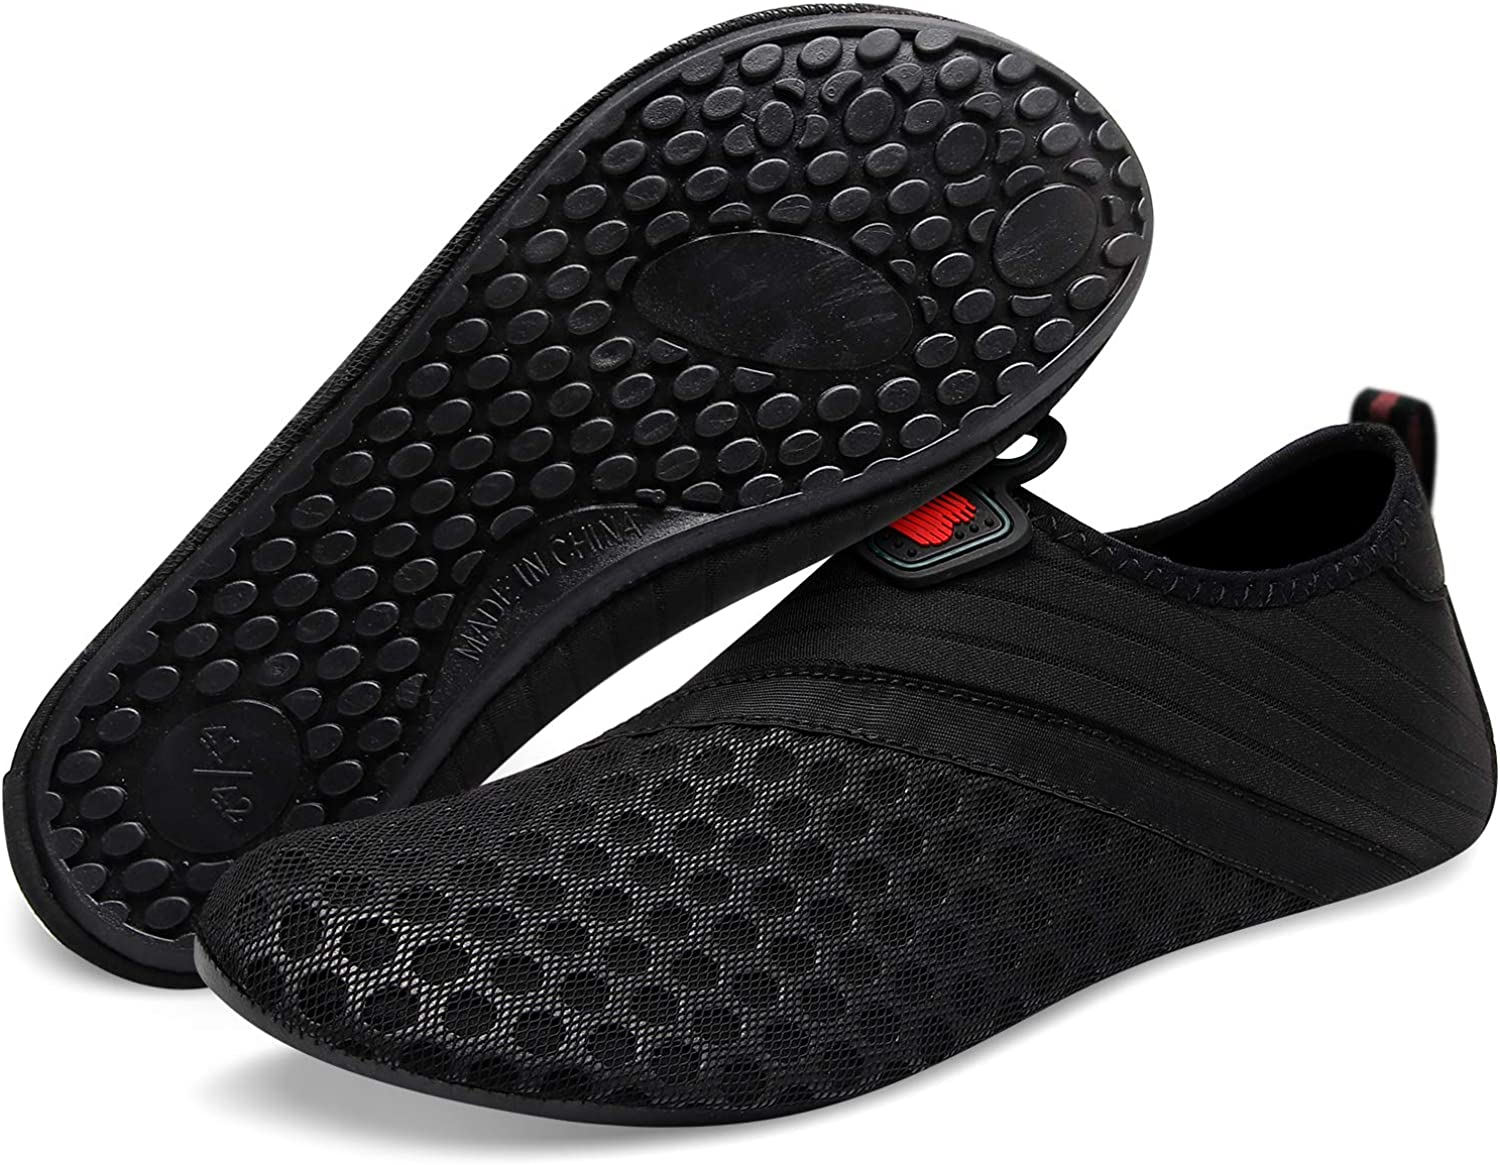 BARERUN Barefoot Quick-Dry Sale special price Water Sports Socks Swi Aqua Price reduction Shoes for